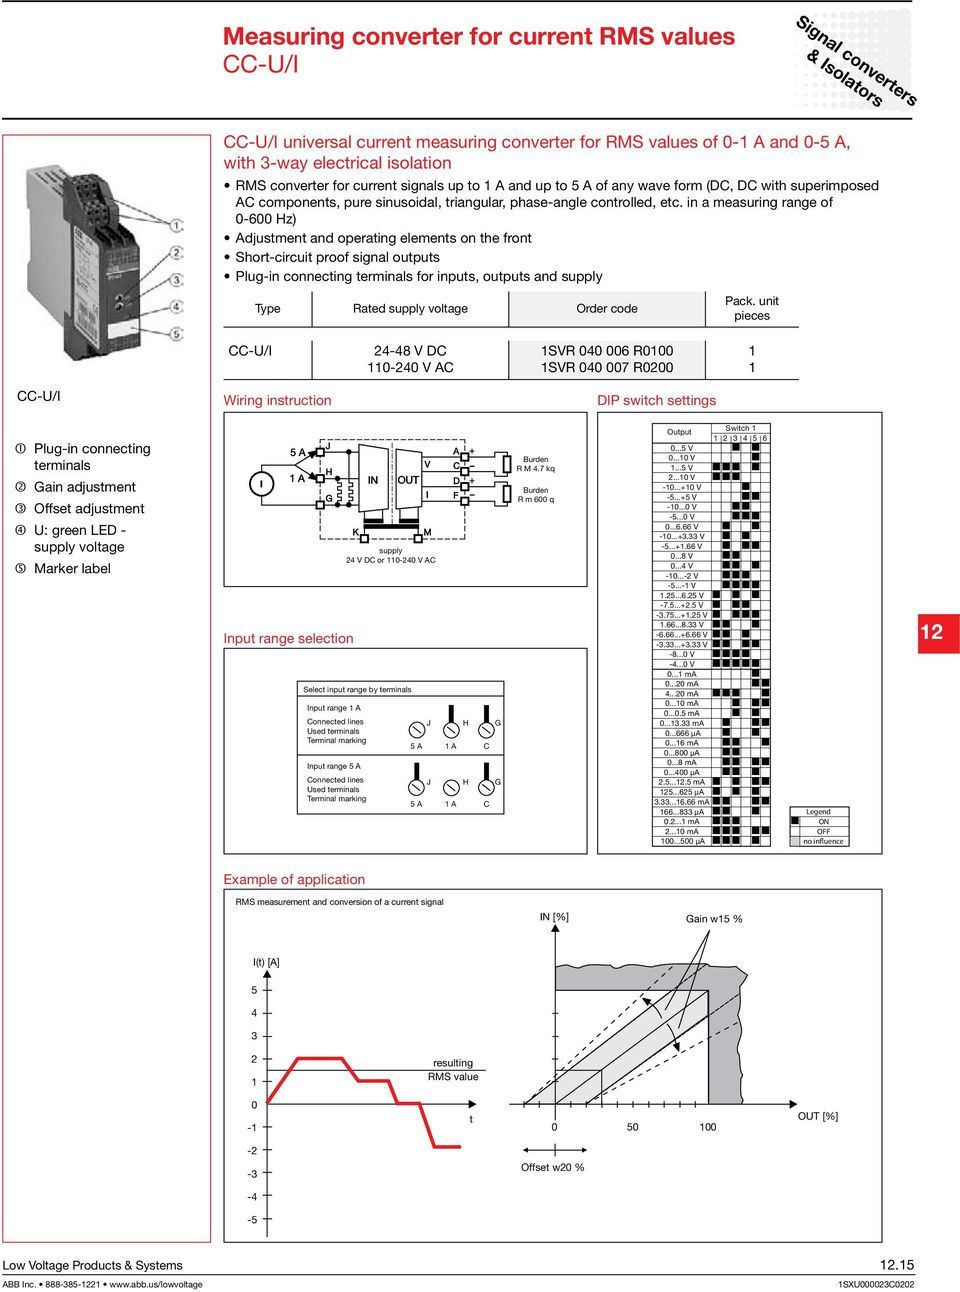 in a measuring range of -6 Hz) Adjustment and operating elements on the front Short-circuit proof signal outputs Plug-in connecting terminals for inputs, outputs and supply Type Rated supply voltage